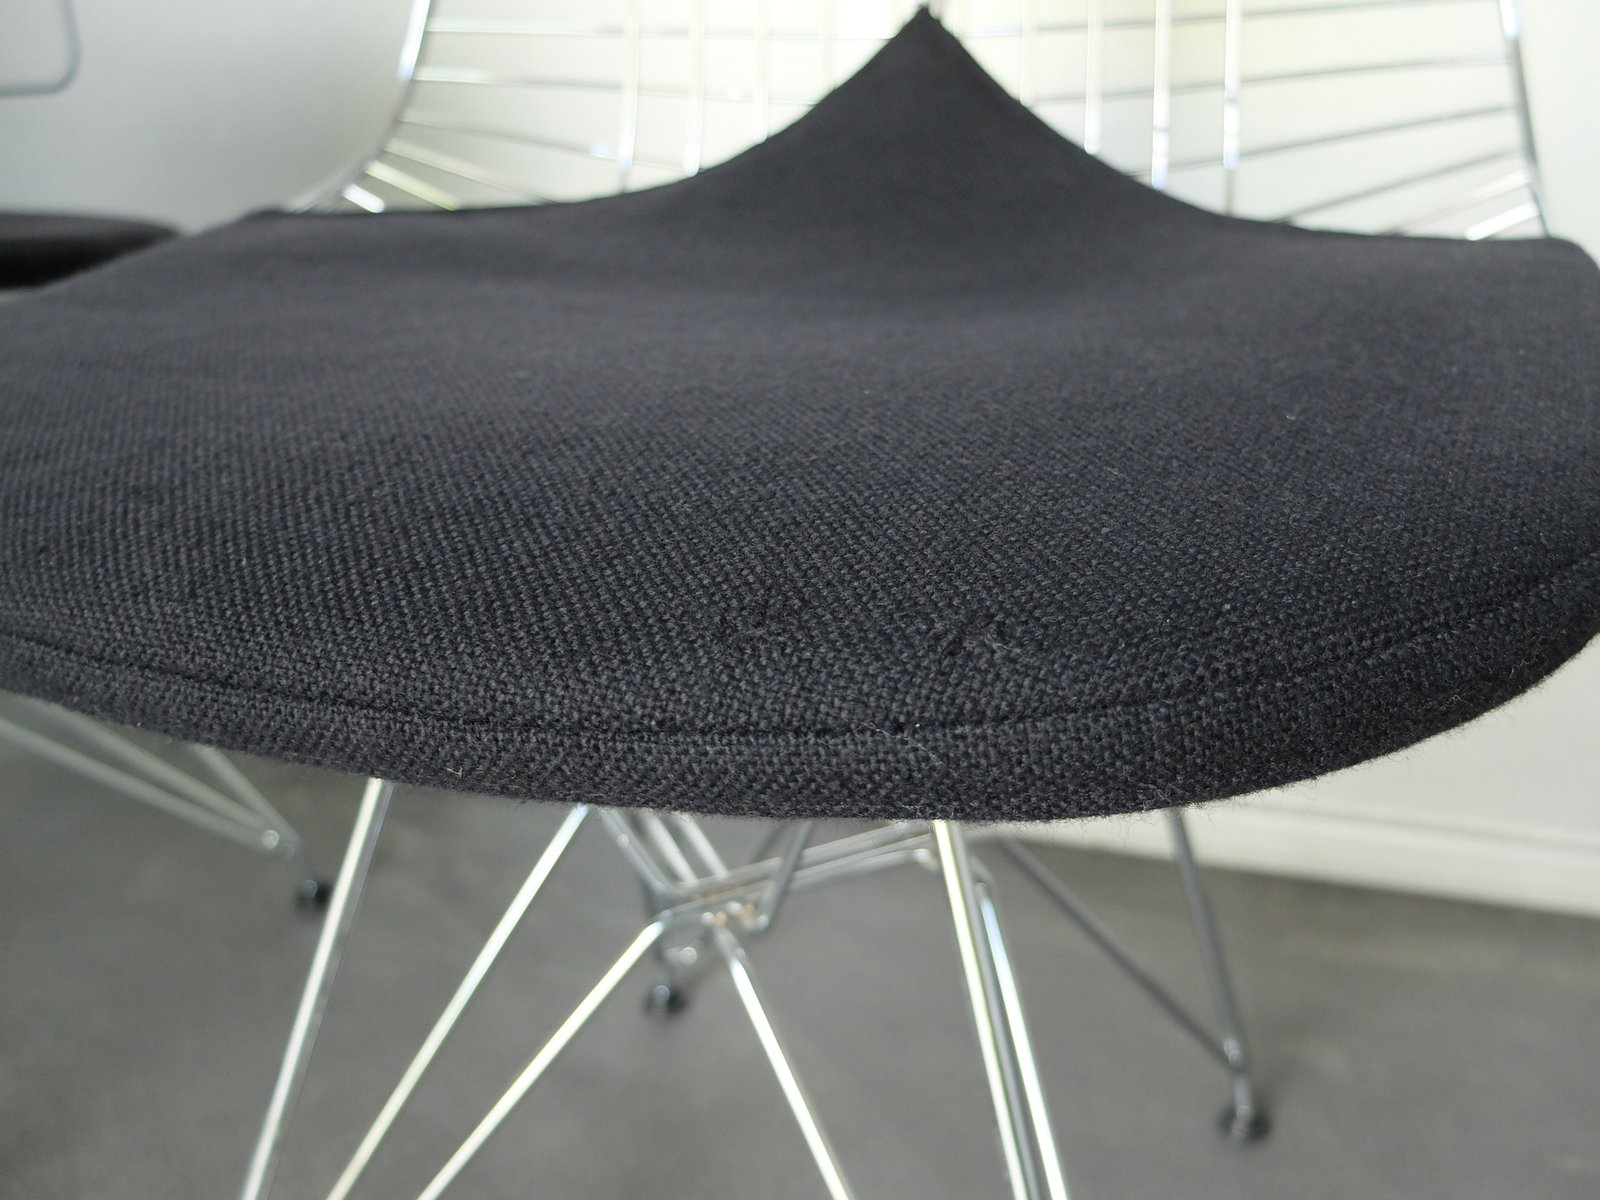 Vintage DKR 2 Wire Chairs with Bikini Covers by Charles & Ray